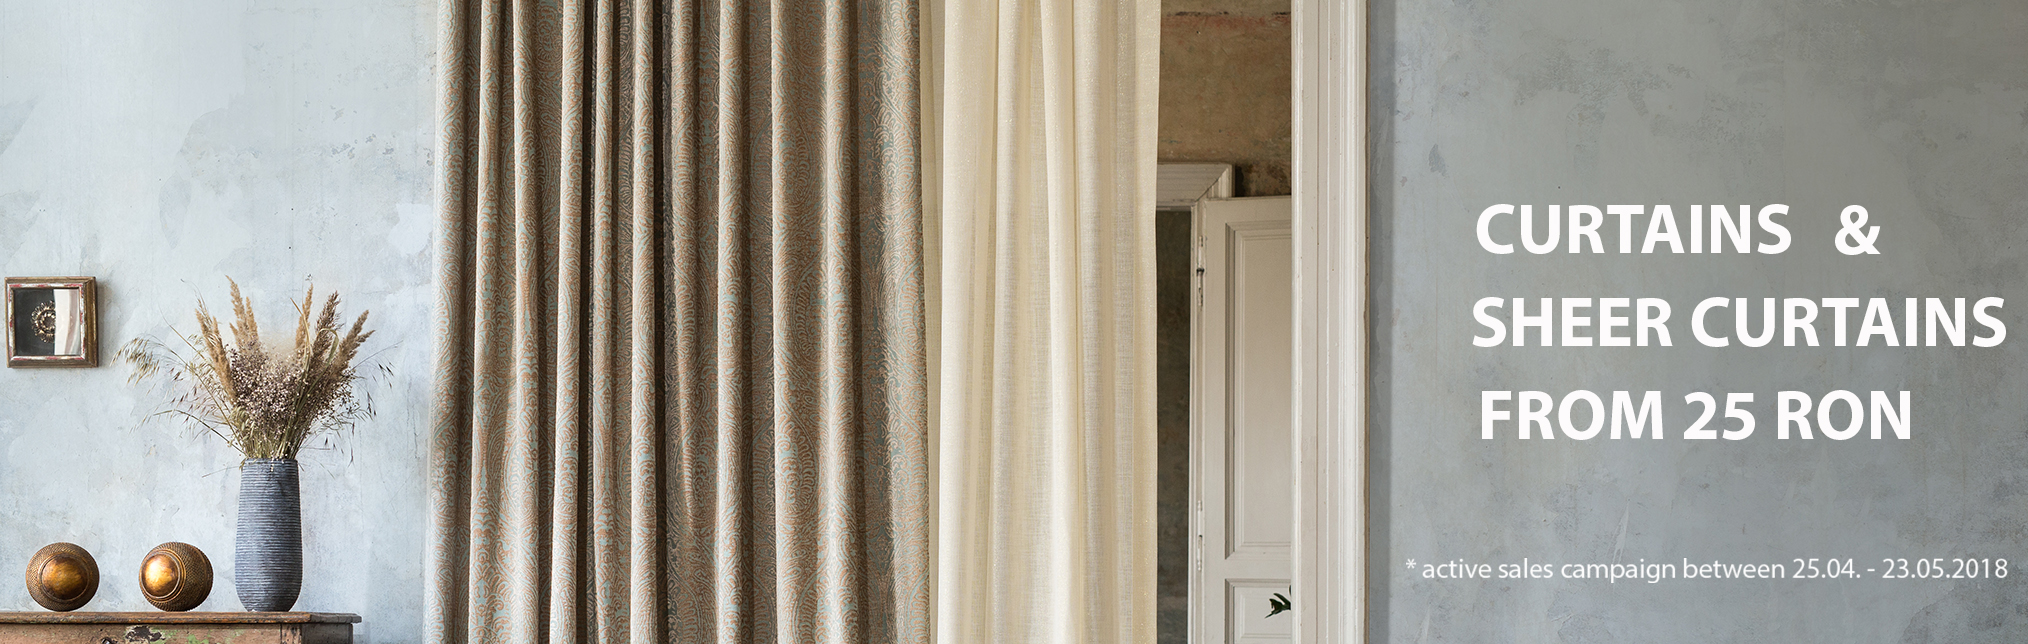 Curtains and Sheer Curtains - Promotion May 2018